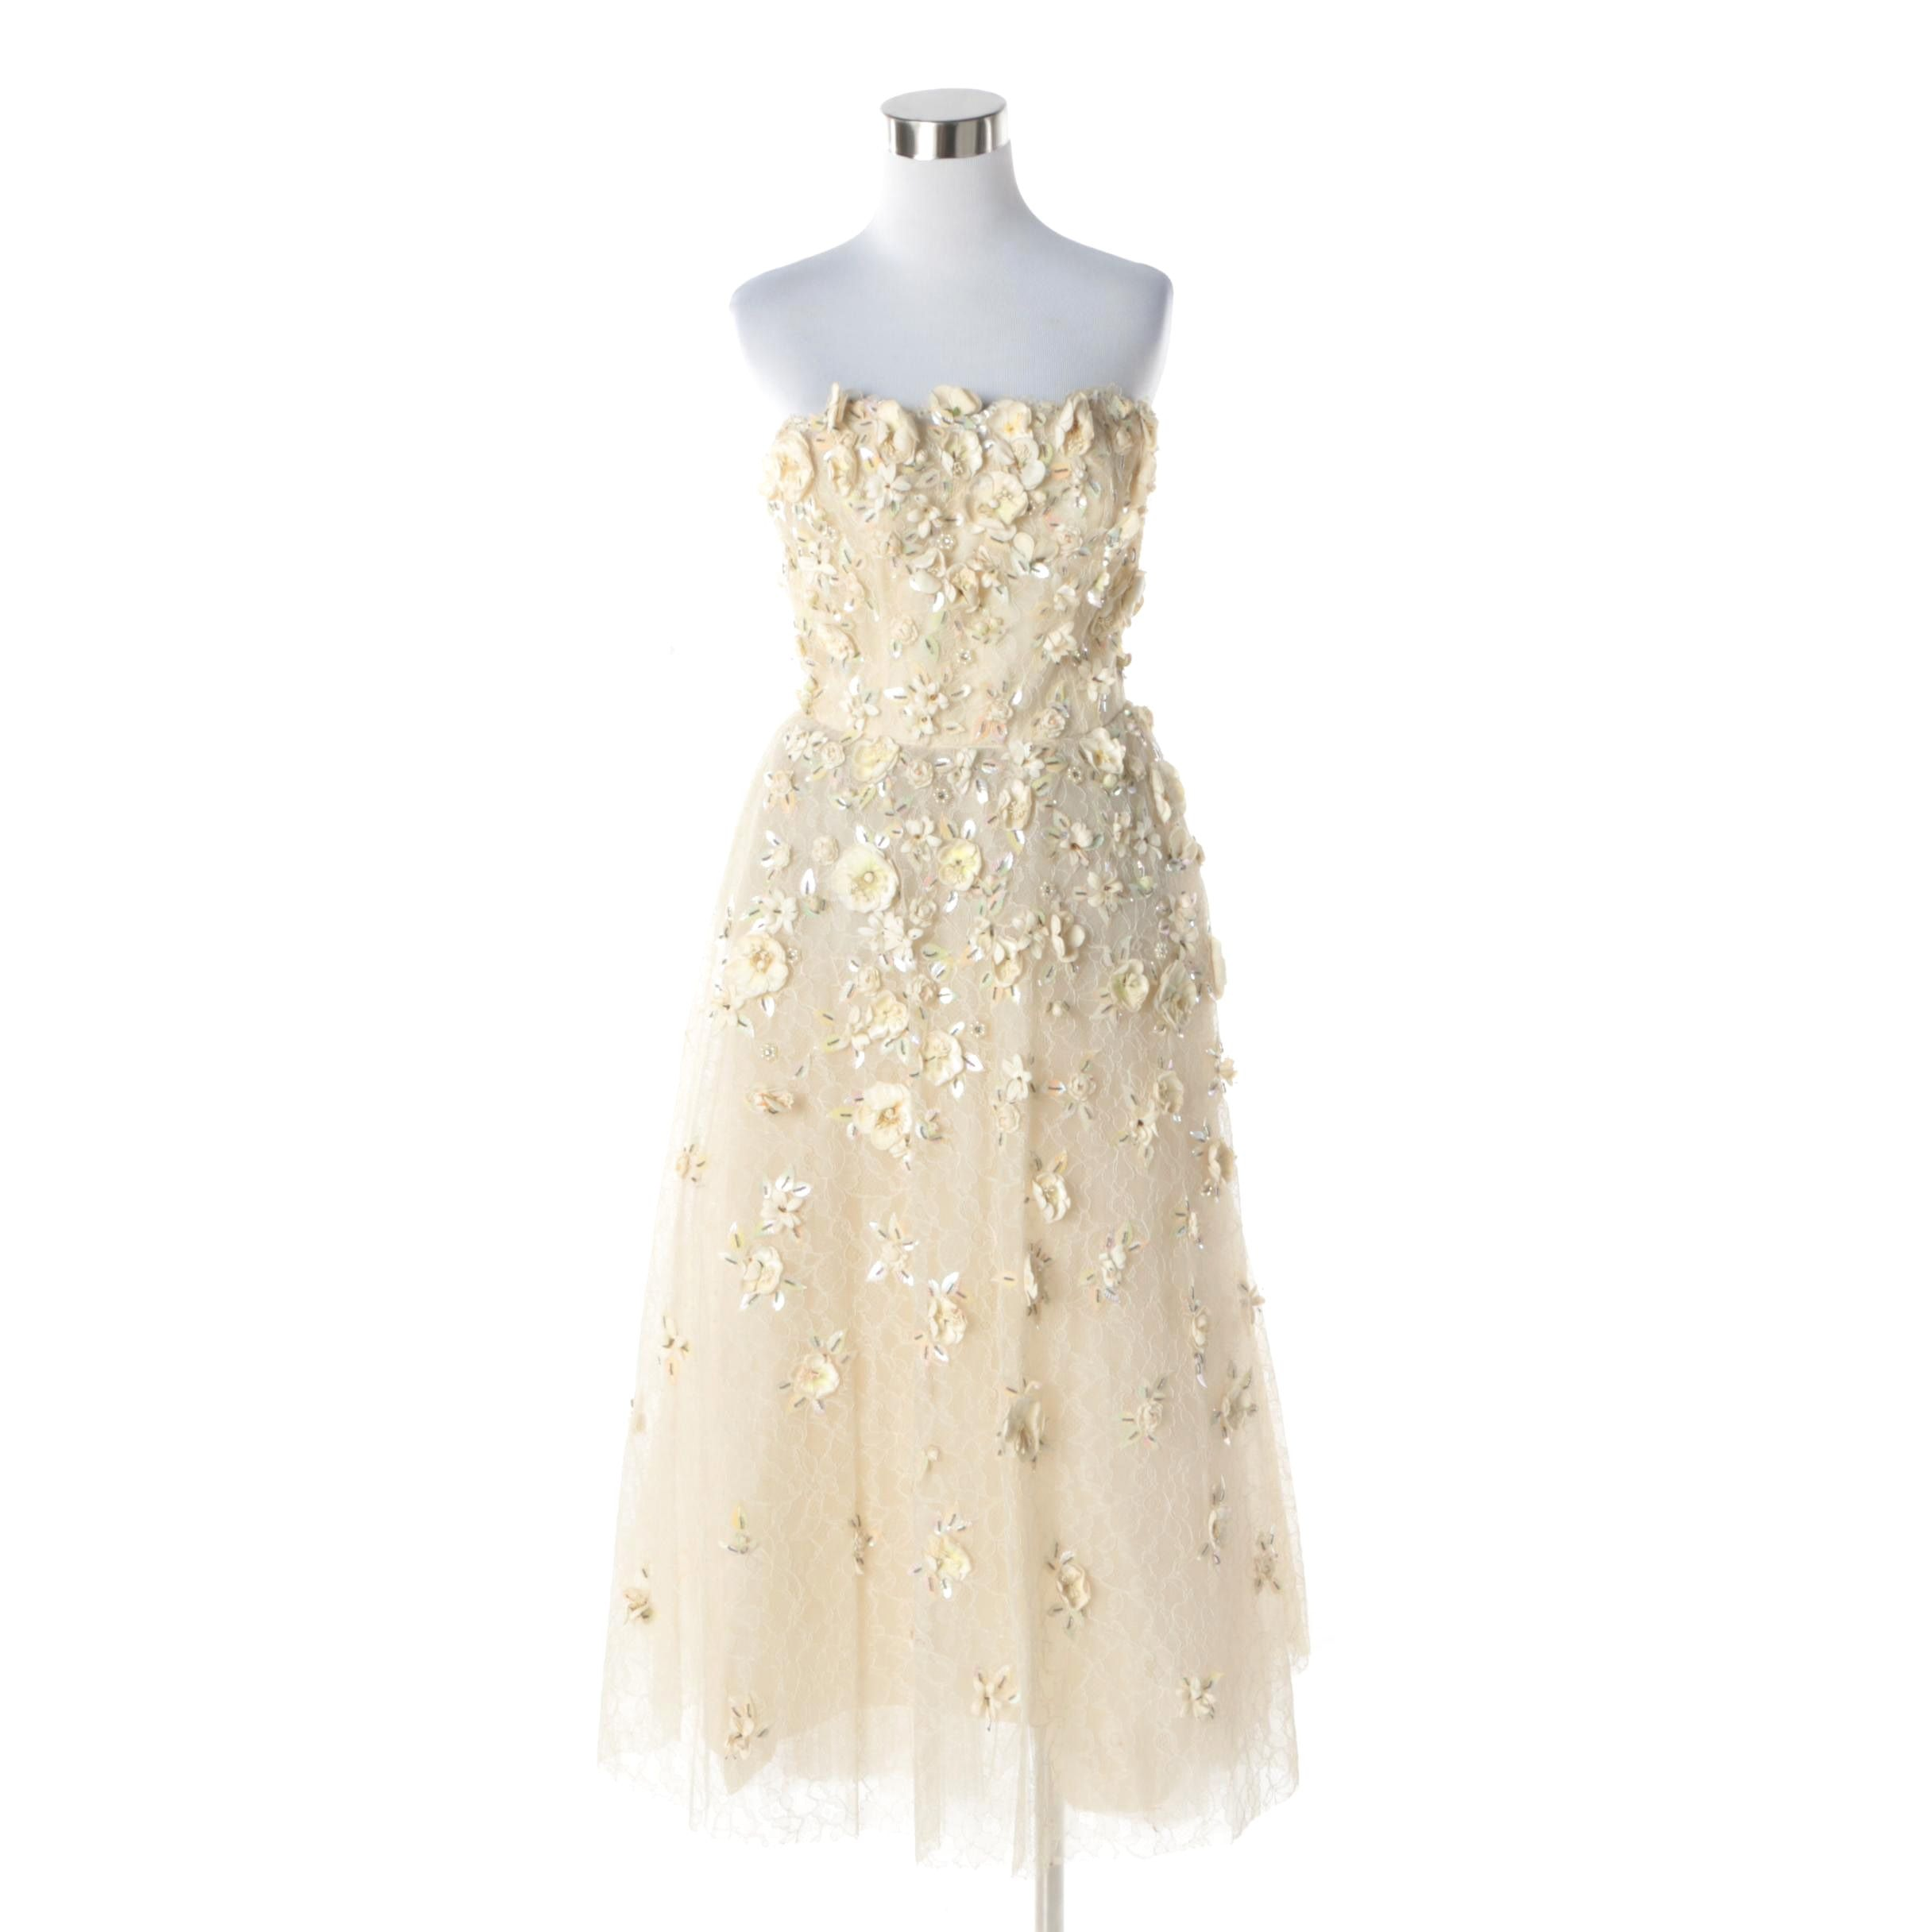 1950s Vintage Ivory Silk Hand Appliqued Floral Strapless Dress with French Lace